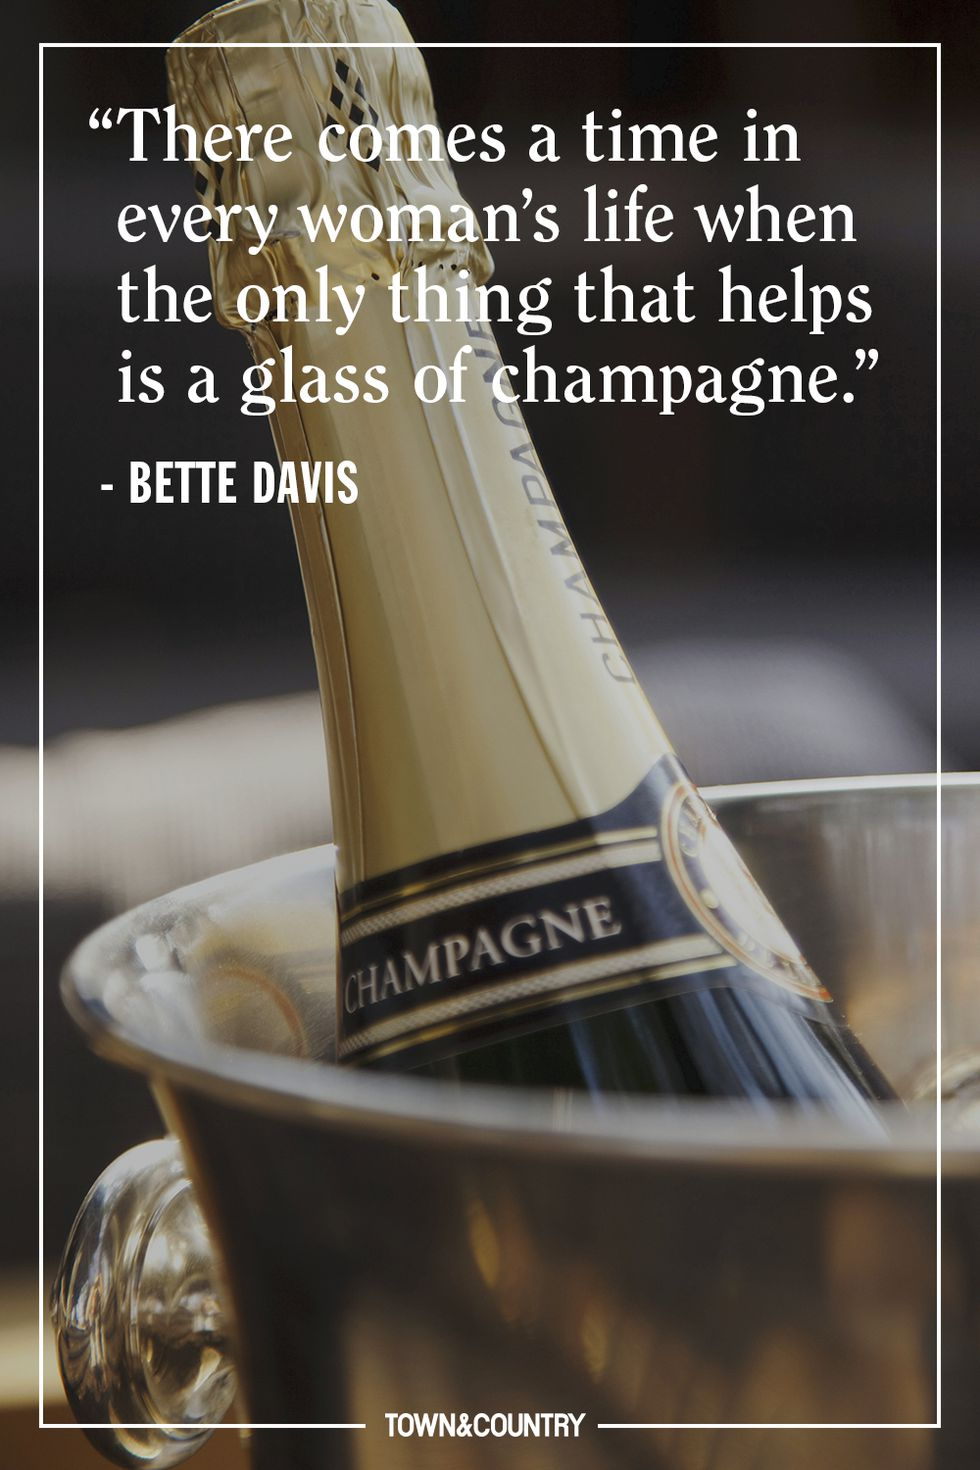 champagne - I know I don't need to tell you again how real the love of champagne is over here, but just in case you forgot, these 10 quotes will have you going to pick up some bubbly and toasting the greats.